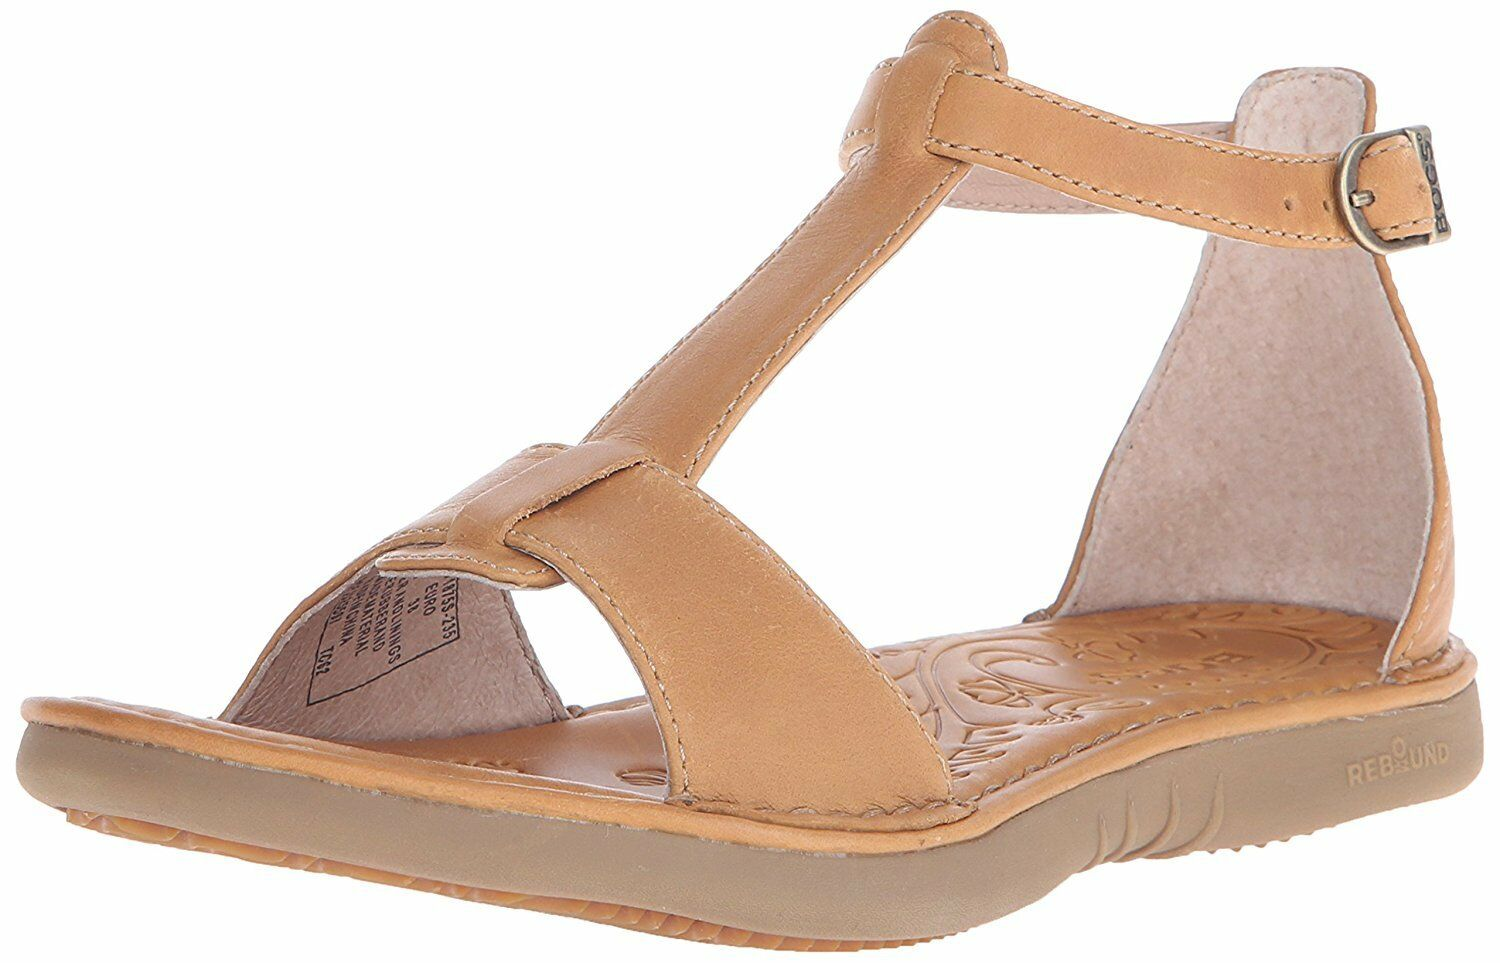 Bogs femmes Amma Leather Sandal- Pick SZ Couleur.